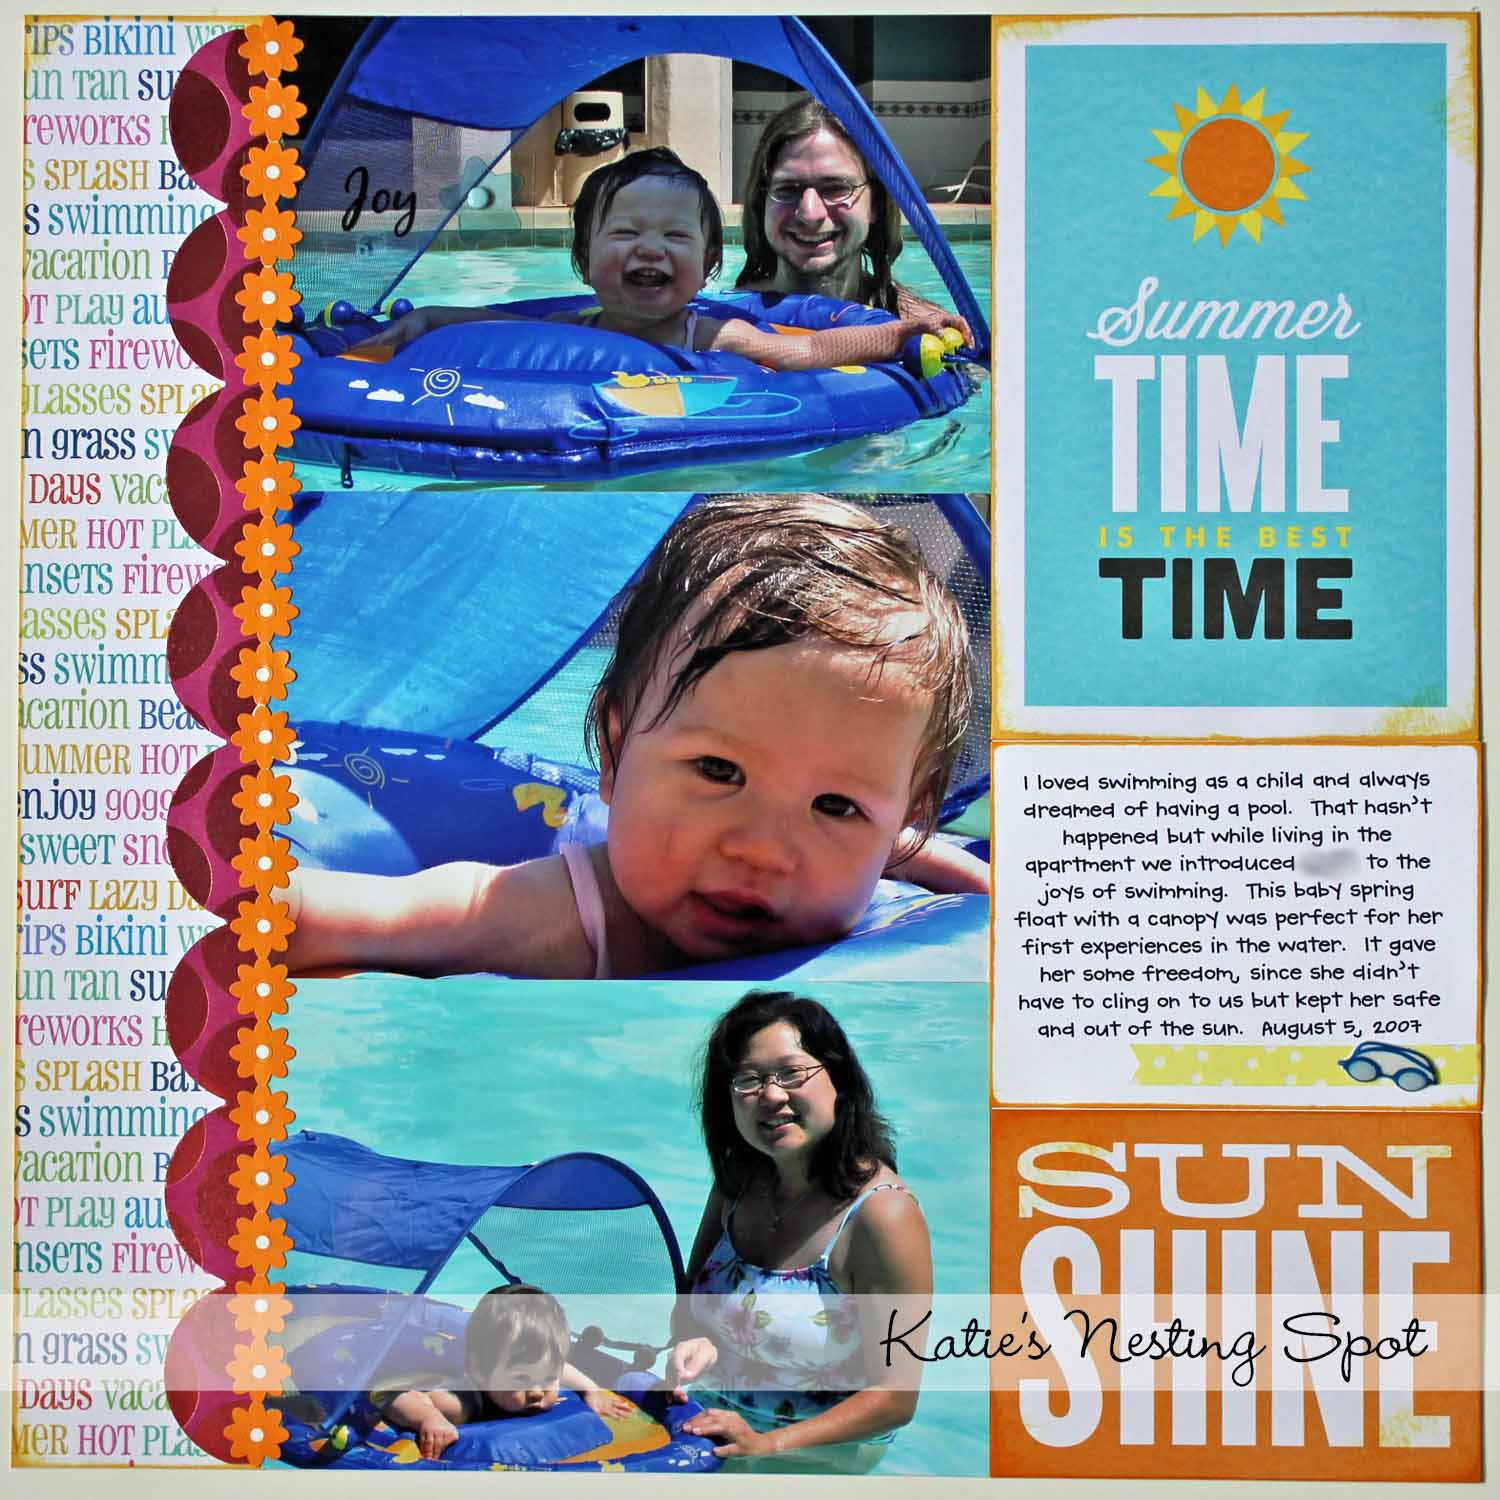 How to scrapbook without page protectors - Normally This Wrmk Page Would Have The 12x2 Slot On The Right If On The Lefthand Side Of A Spread I Love How Could Get The Same Look But Put The Patterned